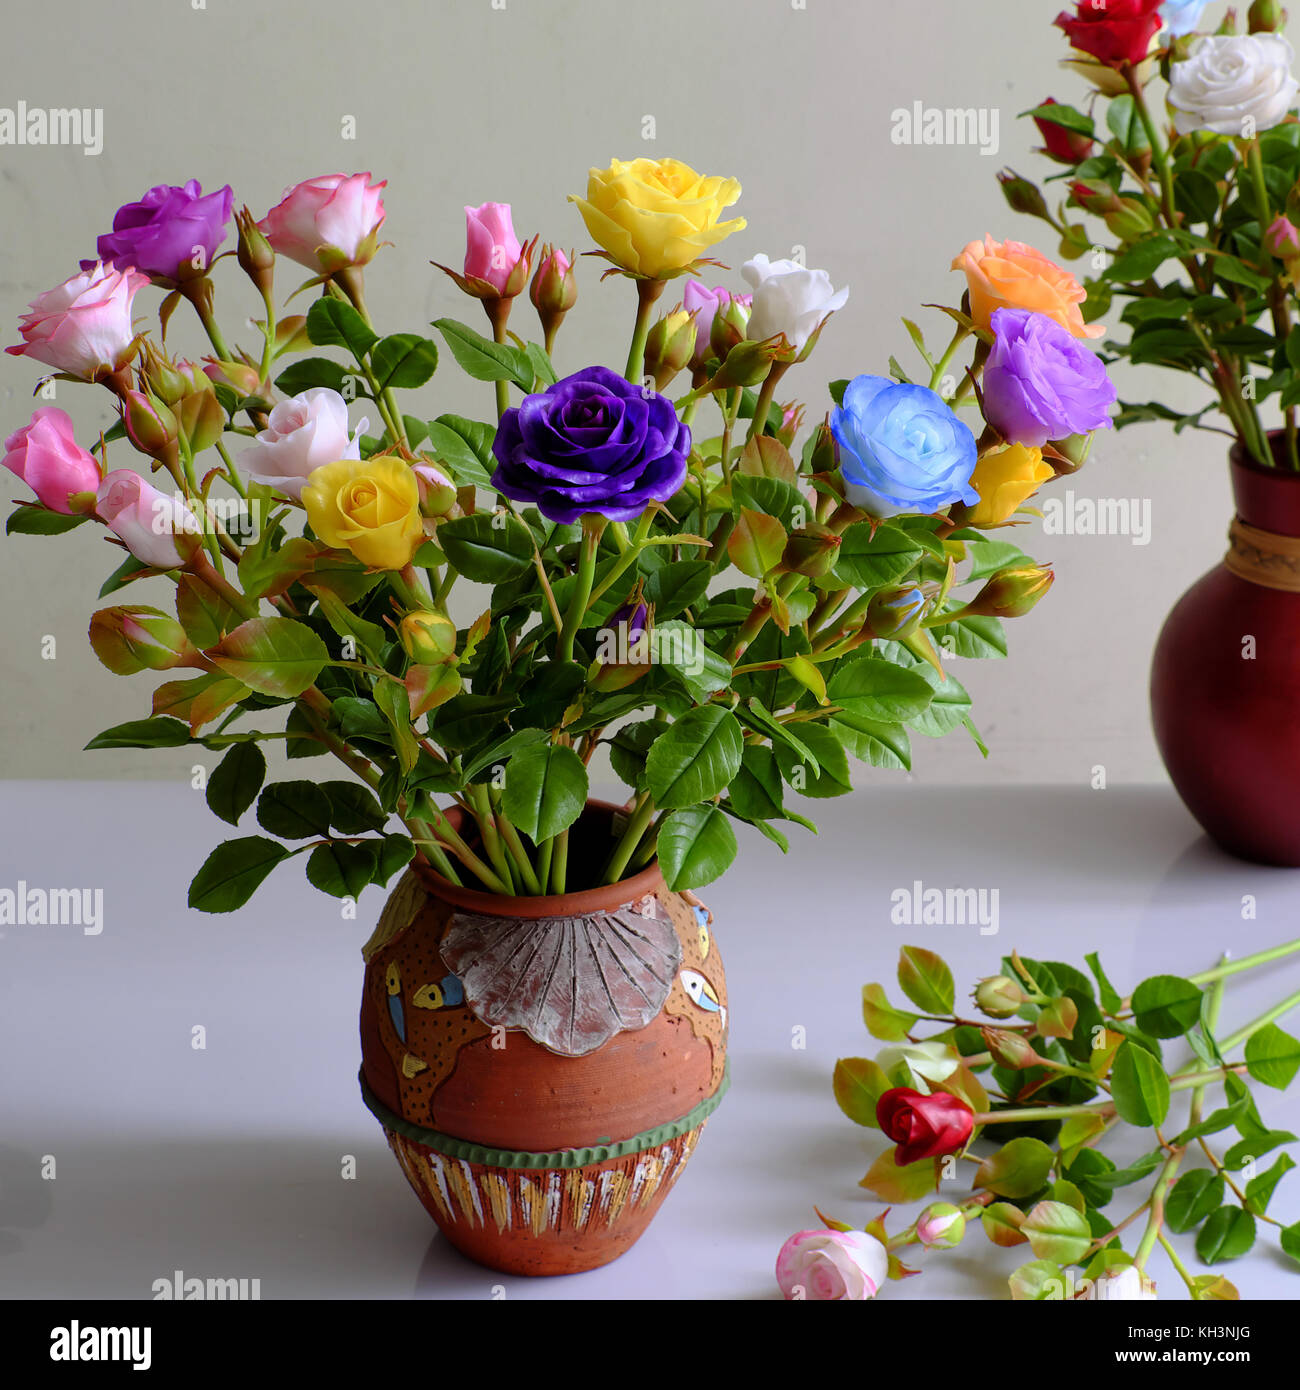 Wonderful Vase Of Rose From Clay Colorful Roses Very Beautiful